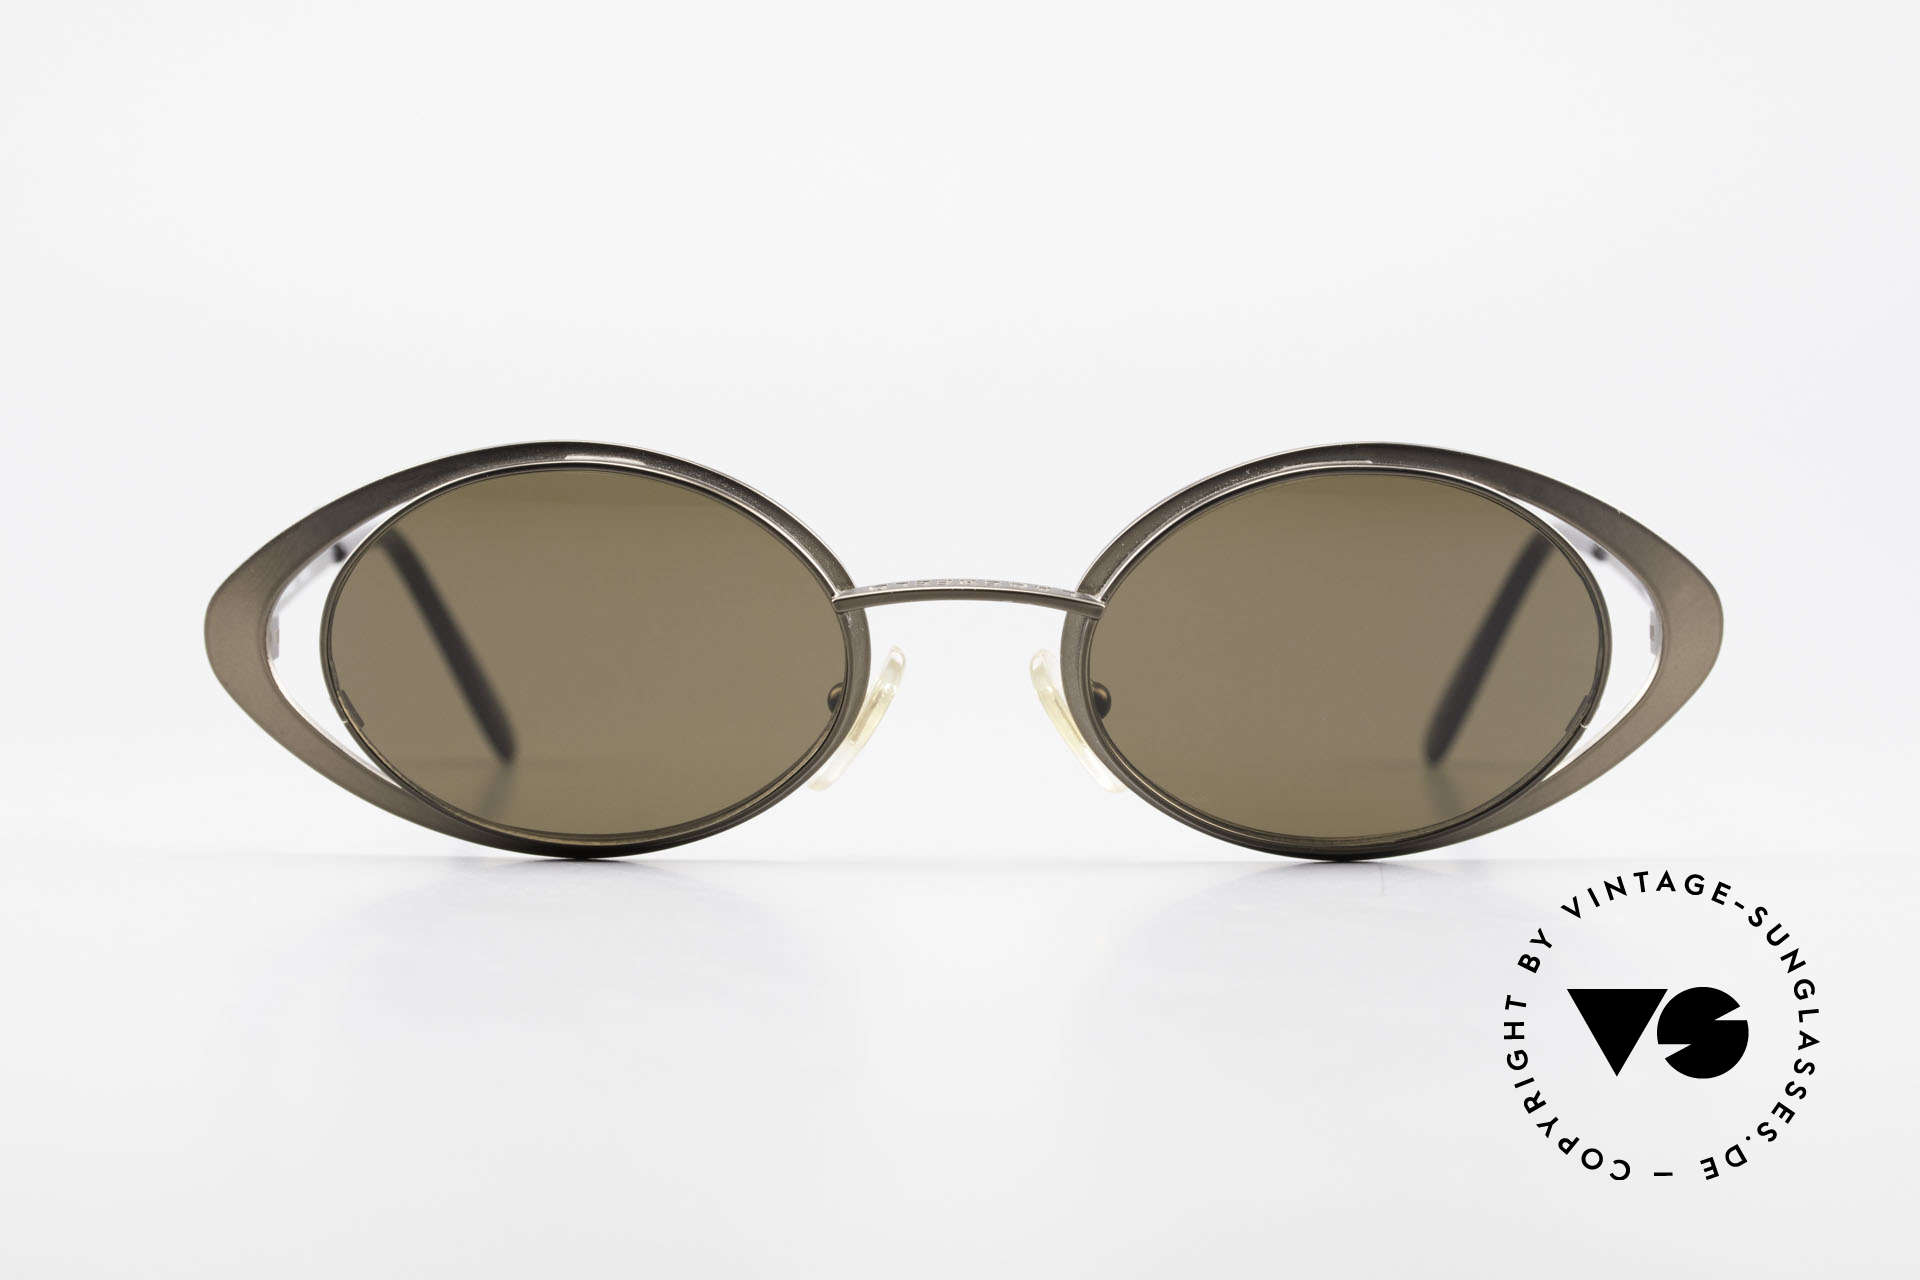 Karl Lagerfeld 4136 Oval 90's Designer Shades, limited-lot production of the 90's in high-end quality, Made for Women